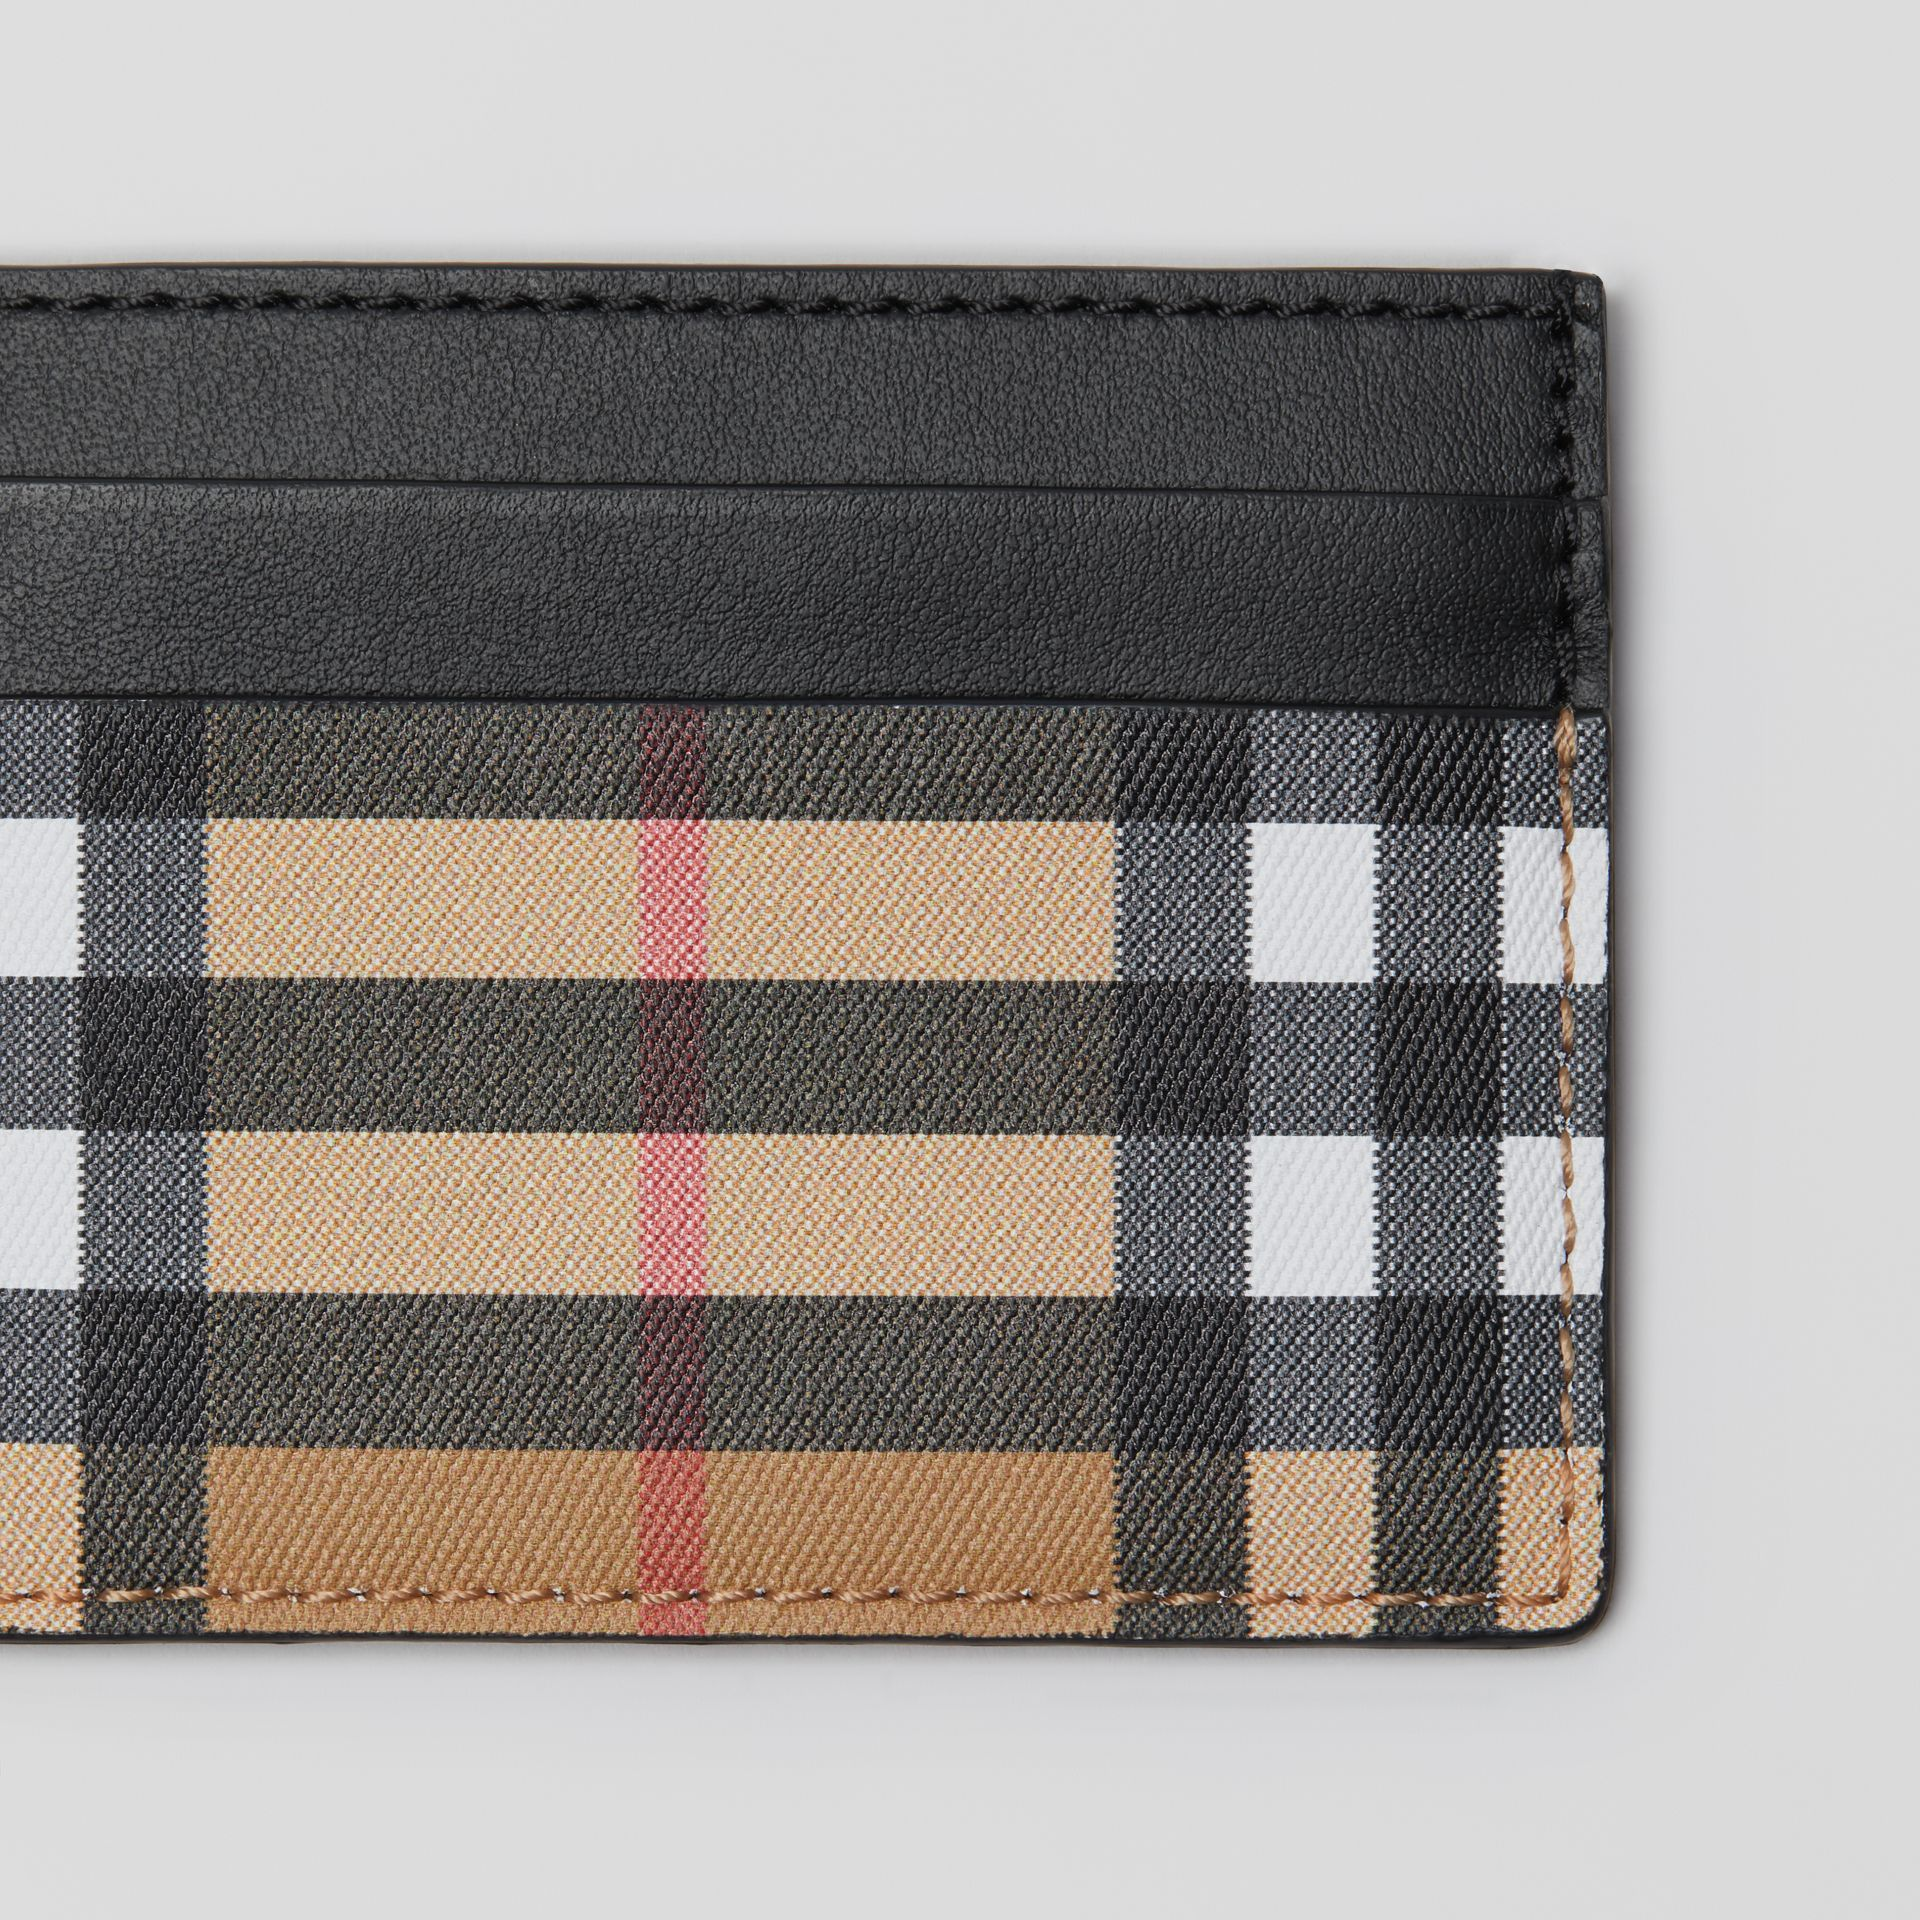 Vintage Check Leather Card Case in Black | Burberry - gallery image 1